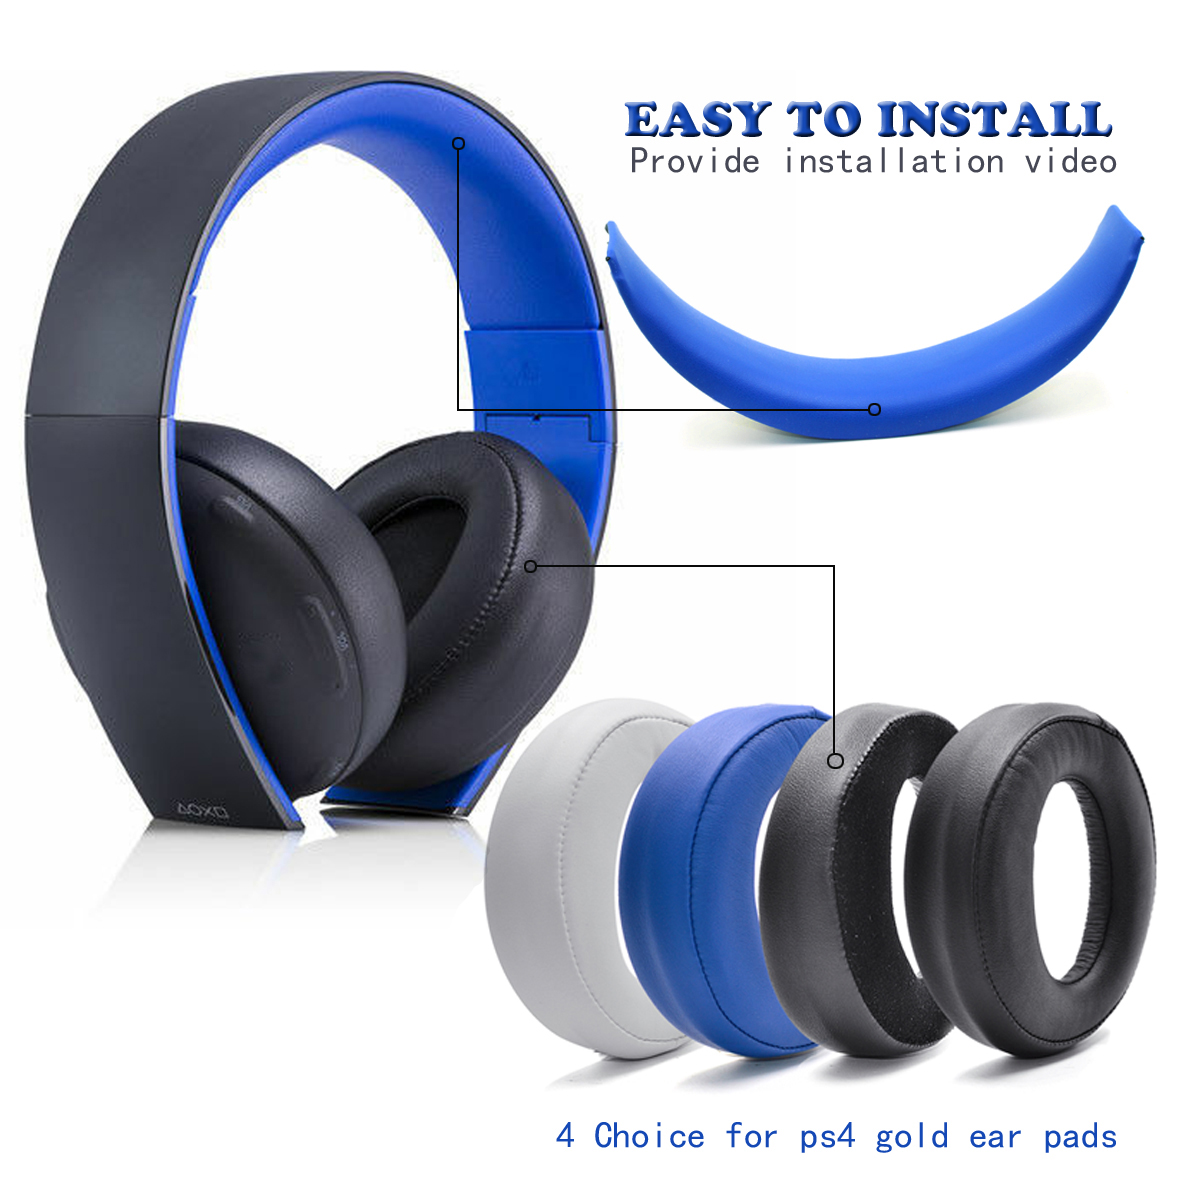 Wireless Headset Earpads For Sony Gold Wireless Headphone PS3 PS4 7.1 Phone Stereo Headfone Big Earmuff Audio Headset Earphone